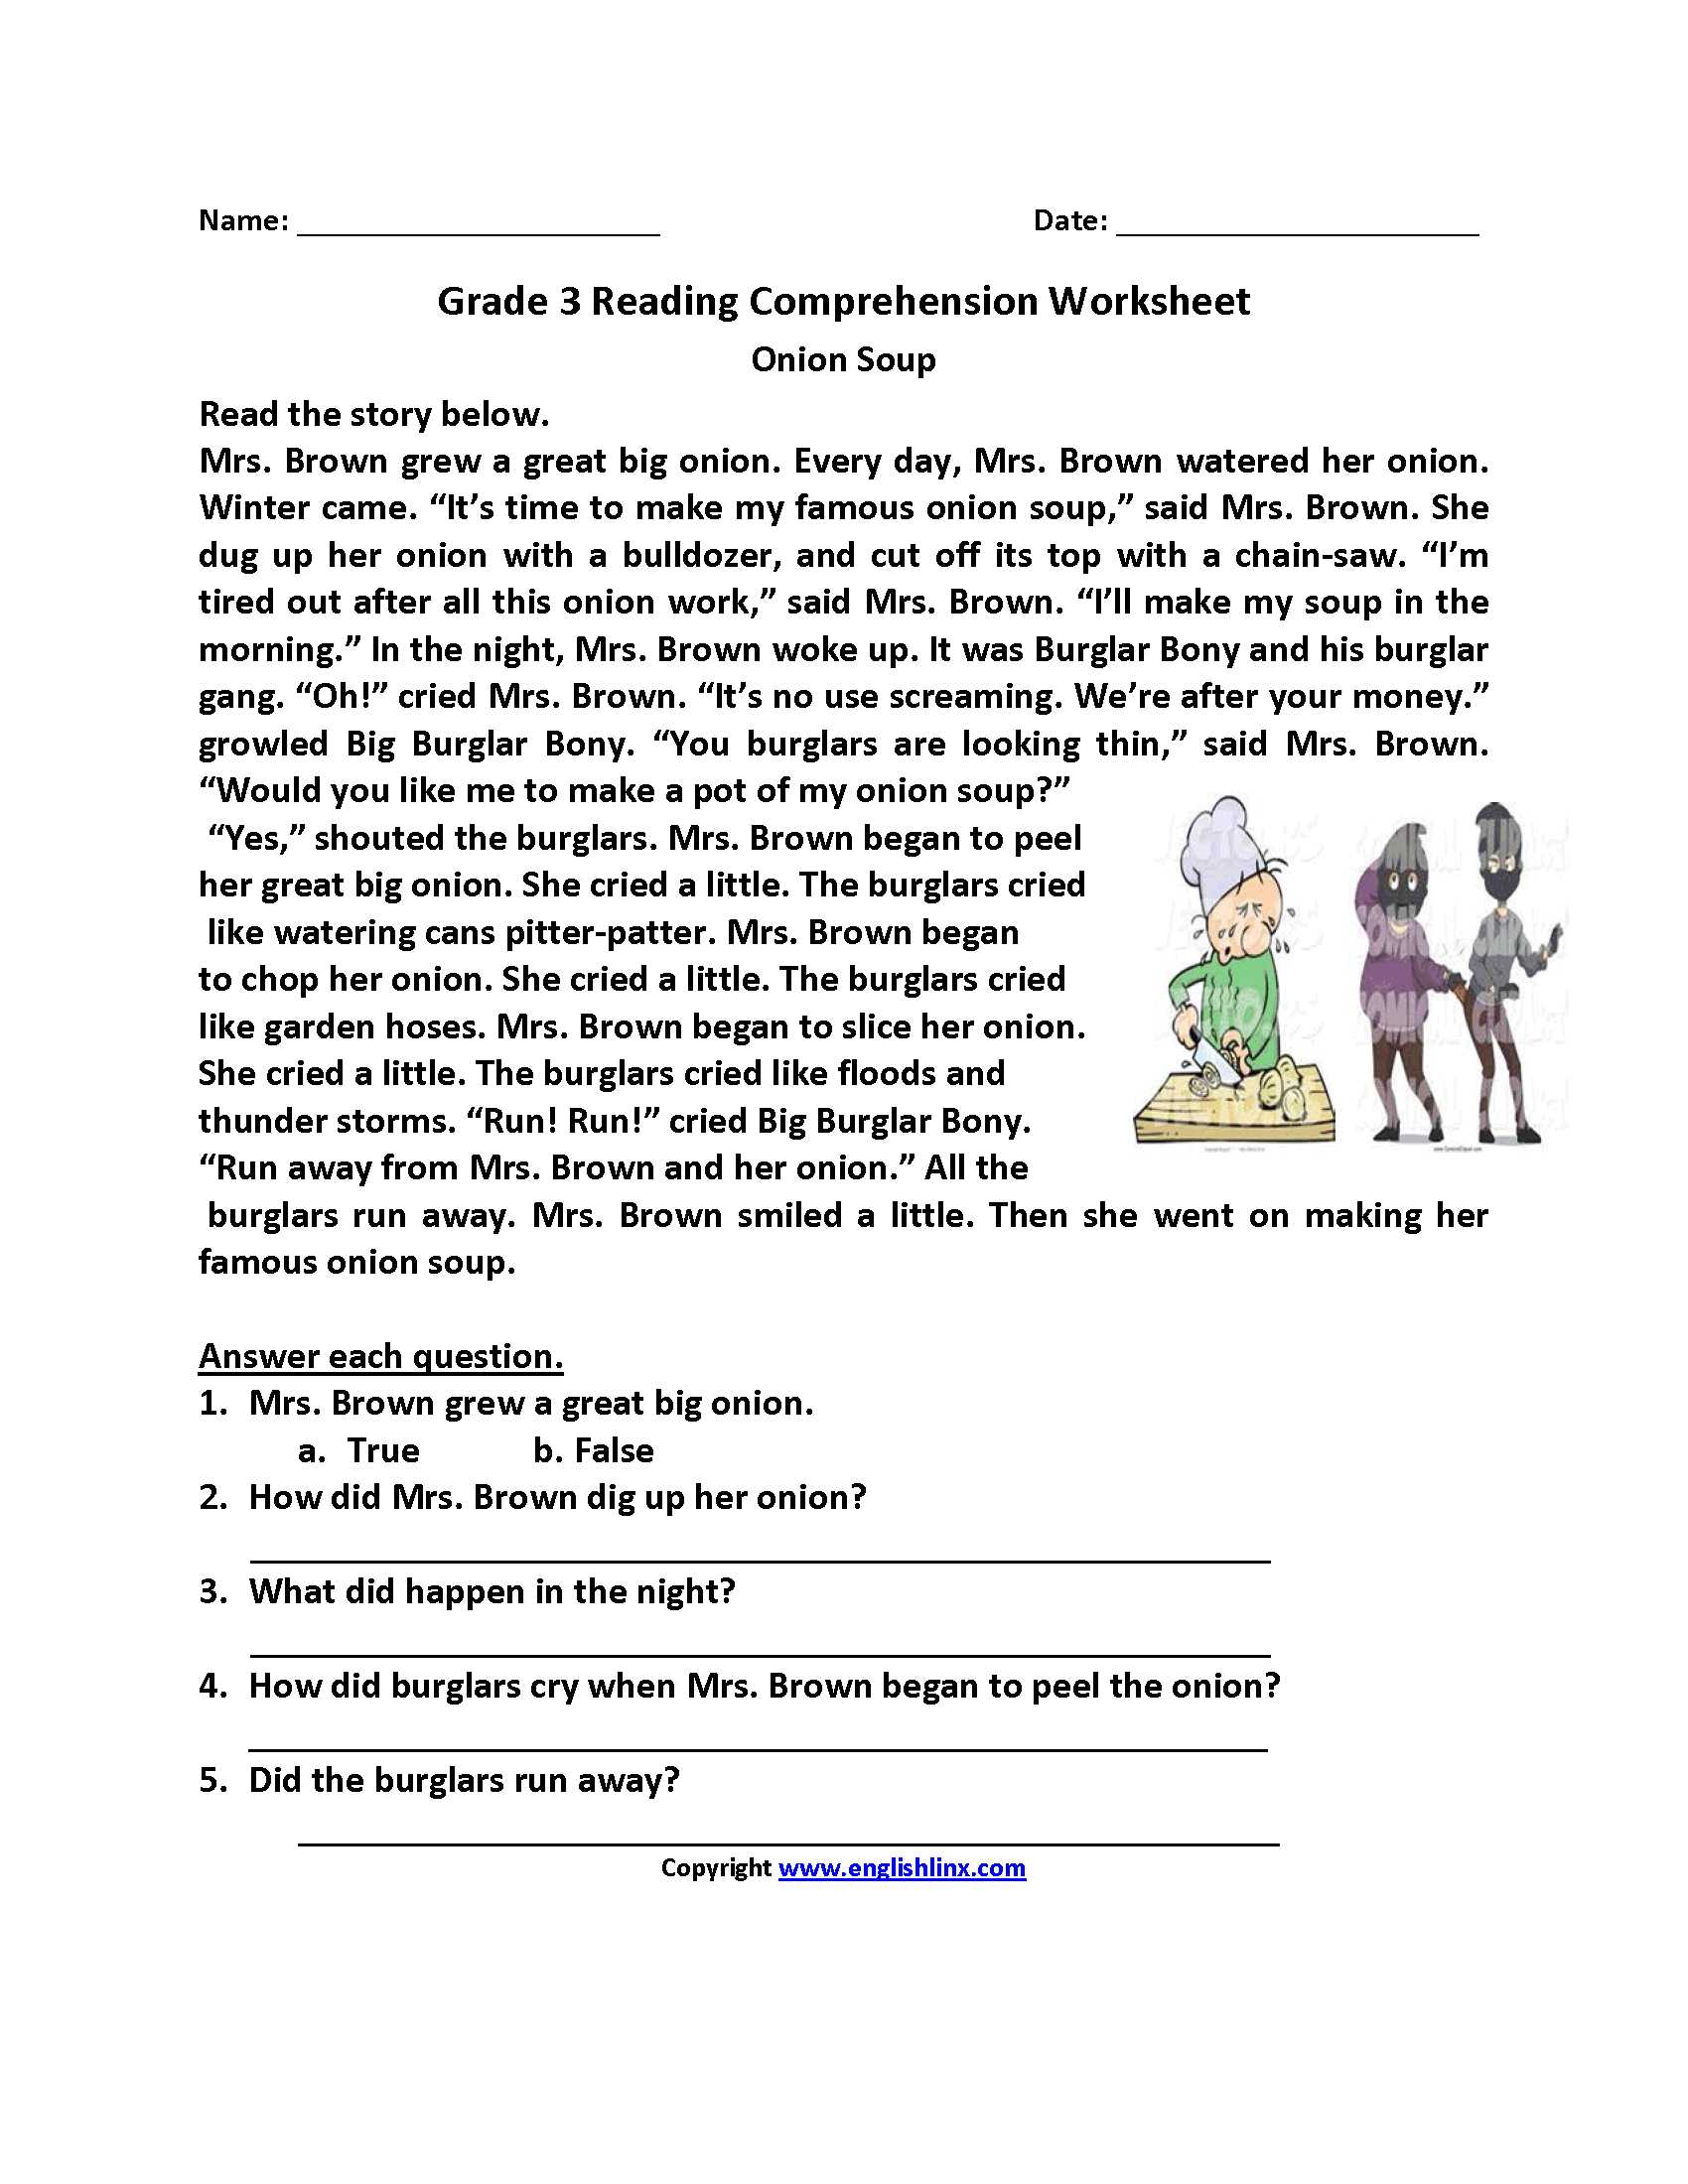 hight resolution of Drawing Conclusions Worksheets 3rd Grade   Printable Worksheets and  Activities for Teachers